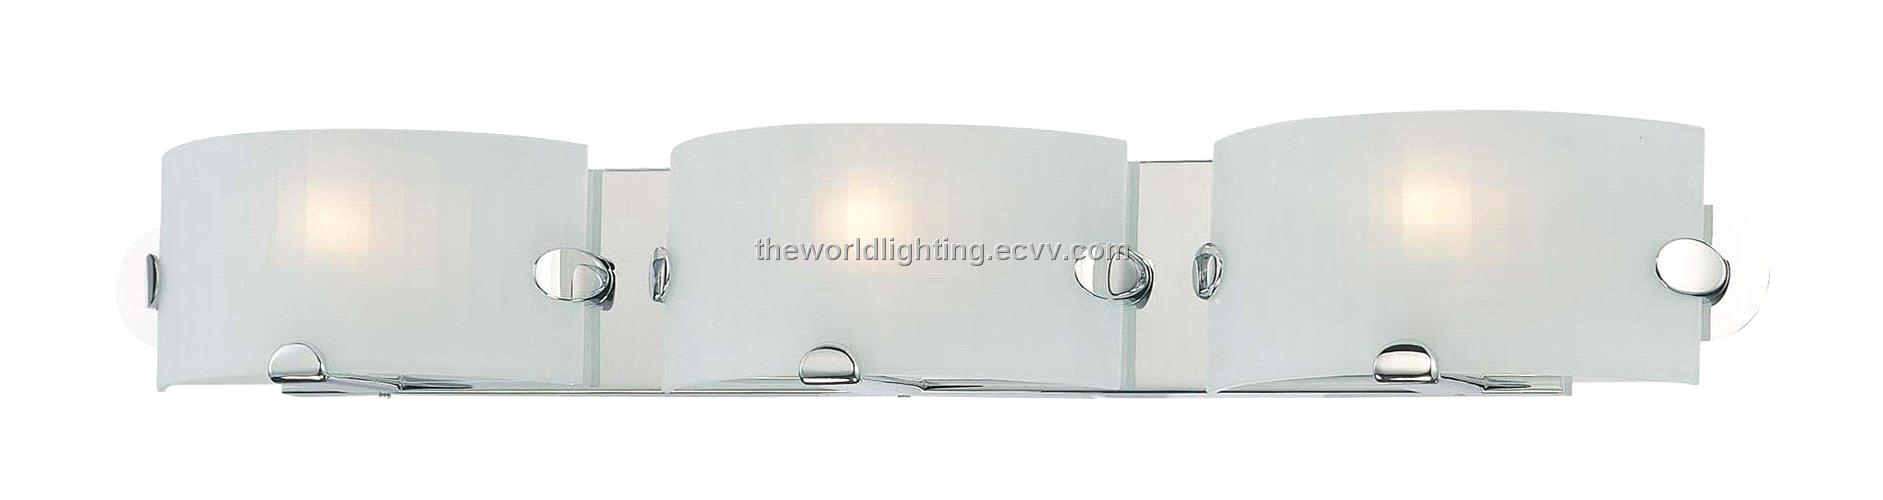 Bl6009 Chrome Metal Stand Glass Cover Modern Bathroom Vanity Light With 3 Bulbs China Purchasing